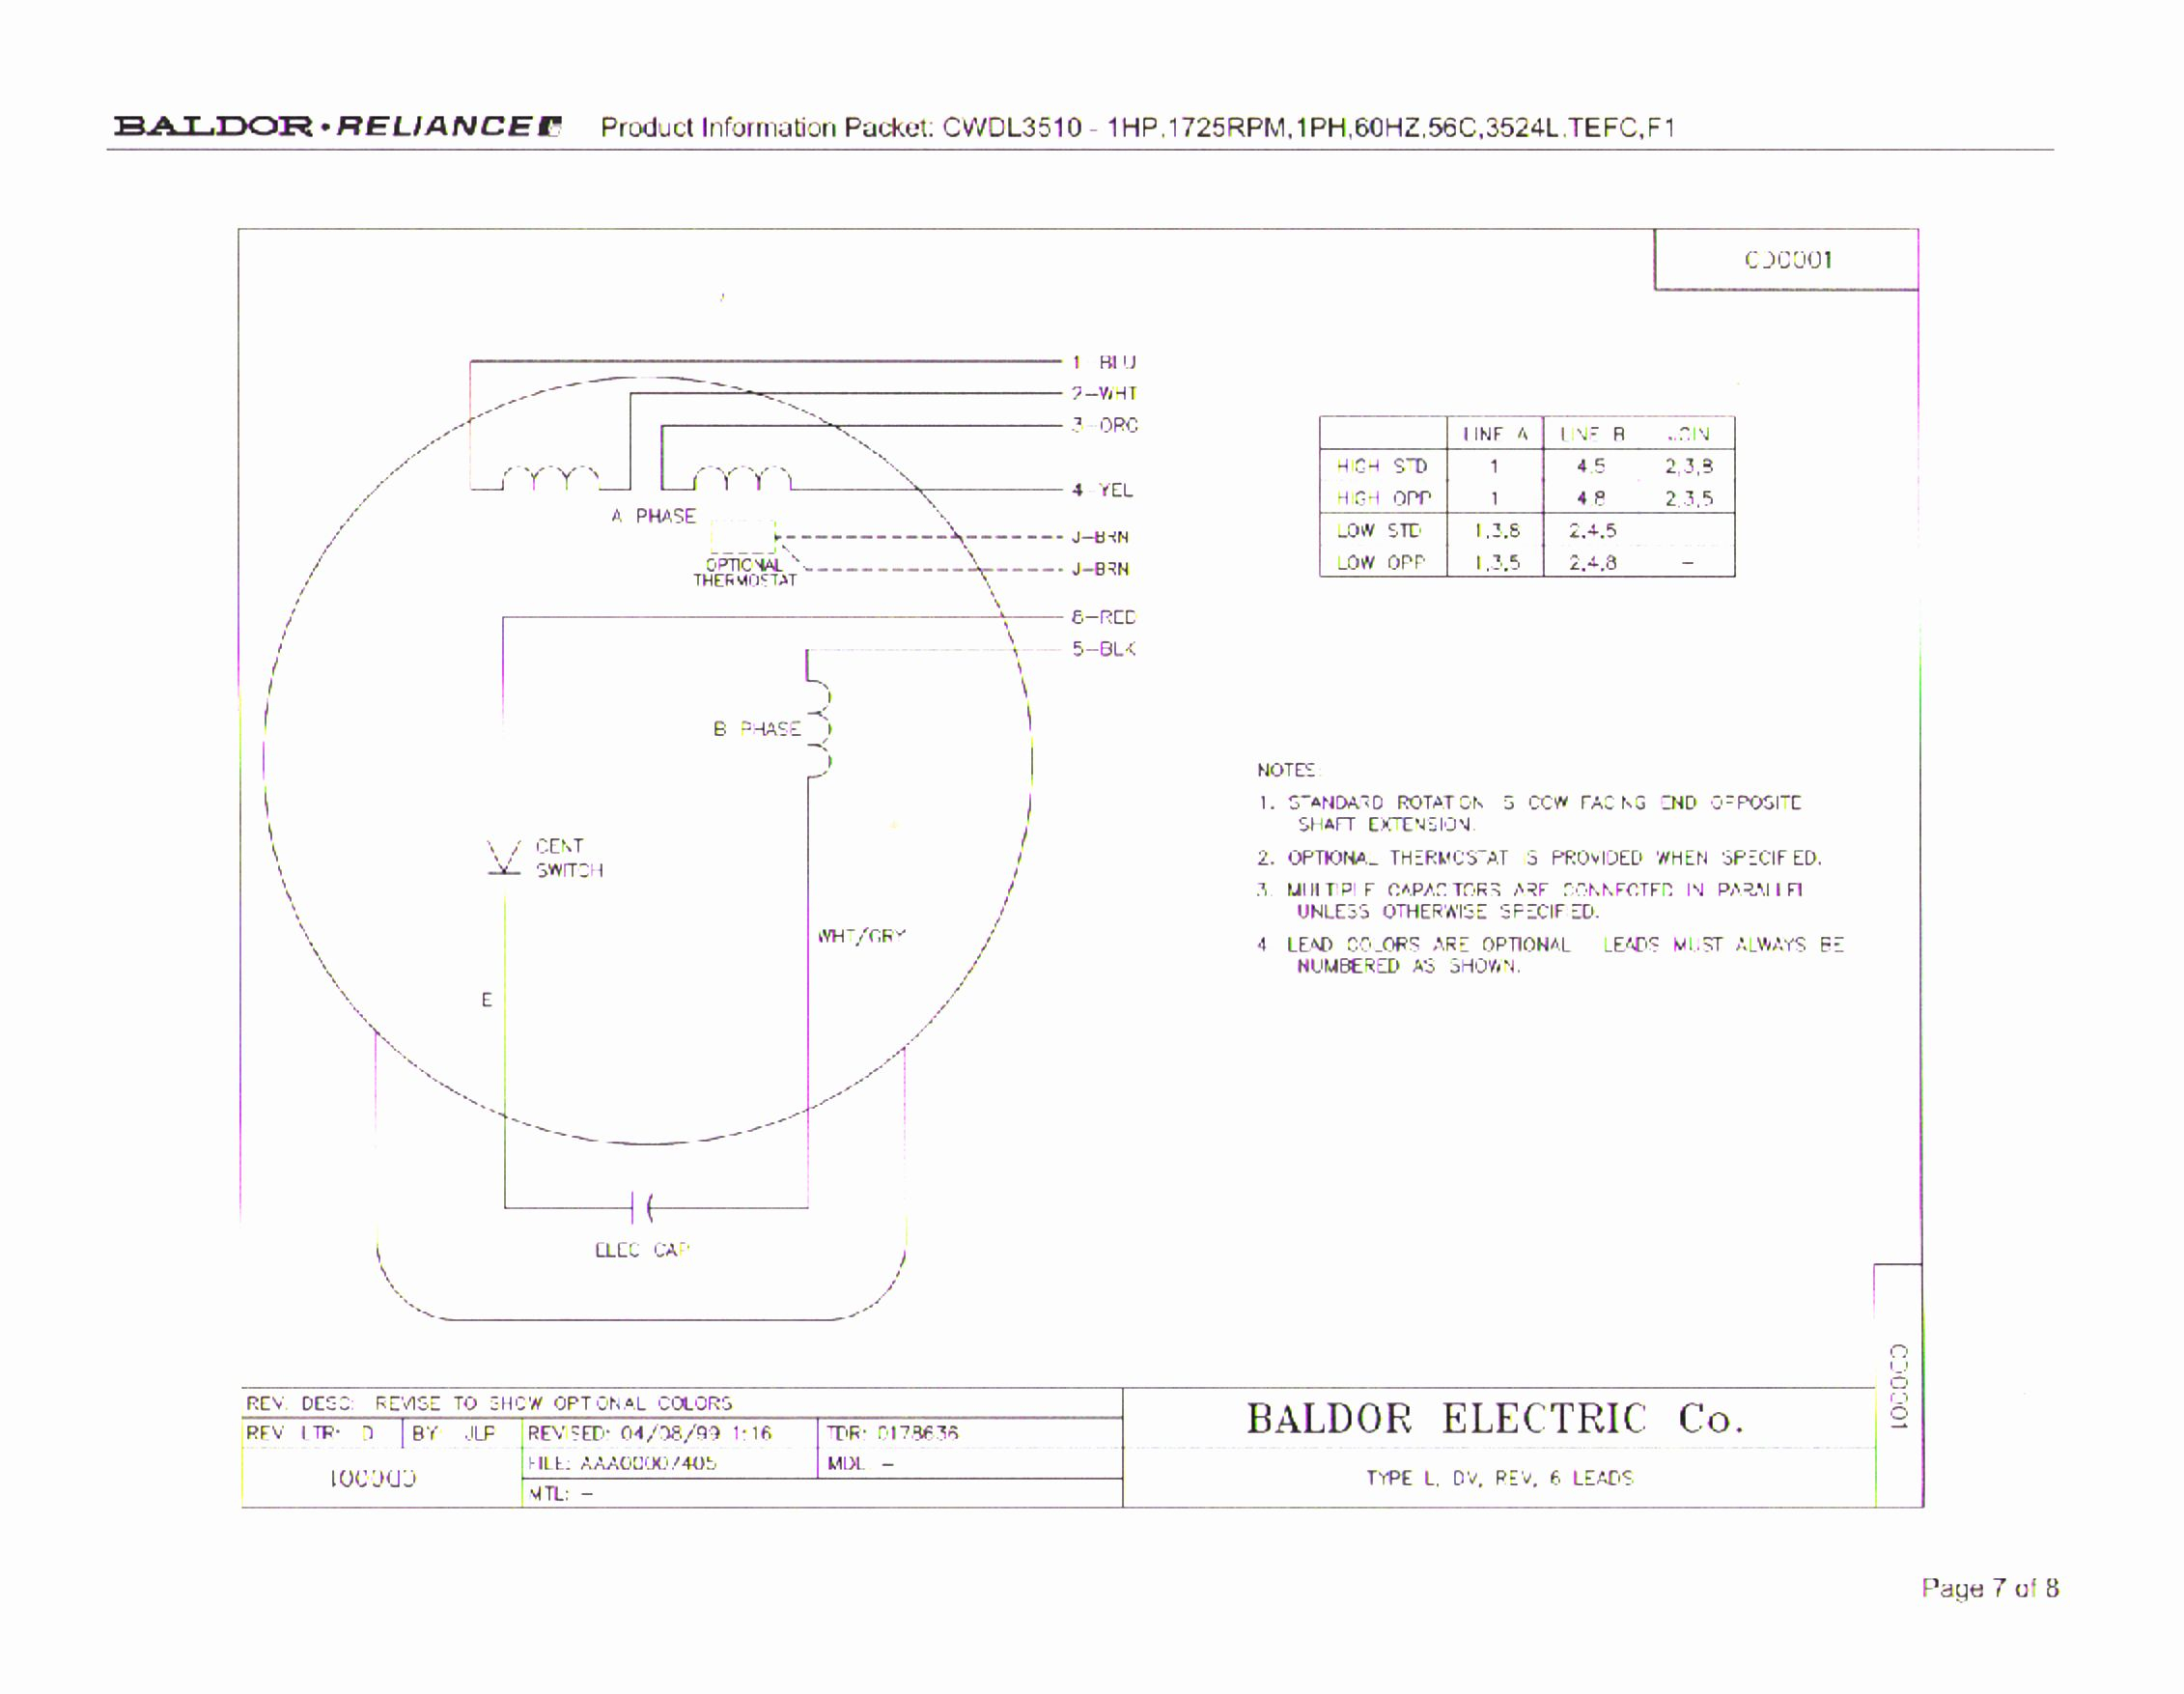 Baldor Electric Motor Wiring Diagram Beautiful Baldor 12 Lead Motor - 12 Lead Motor Wiring Diagram